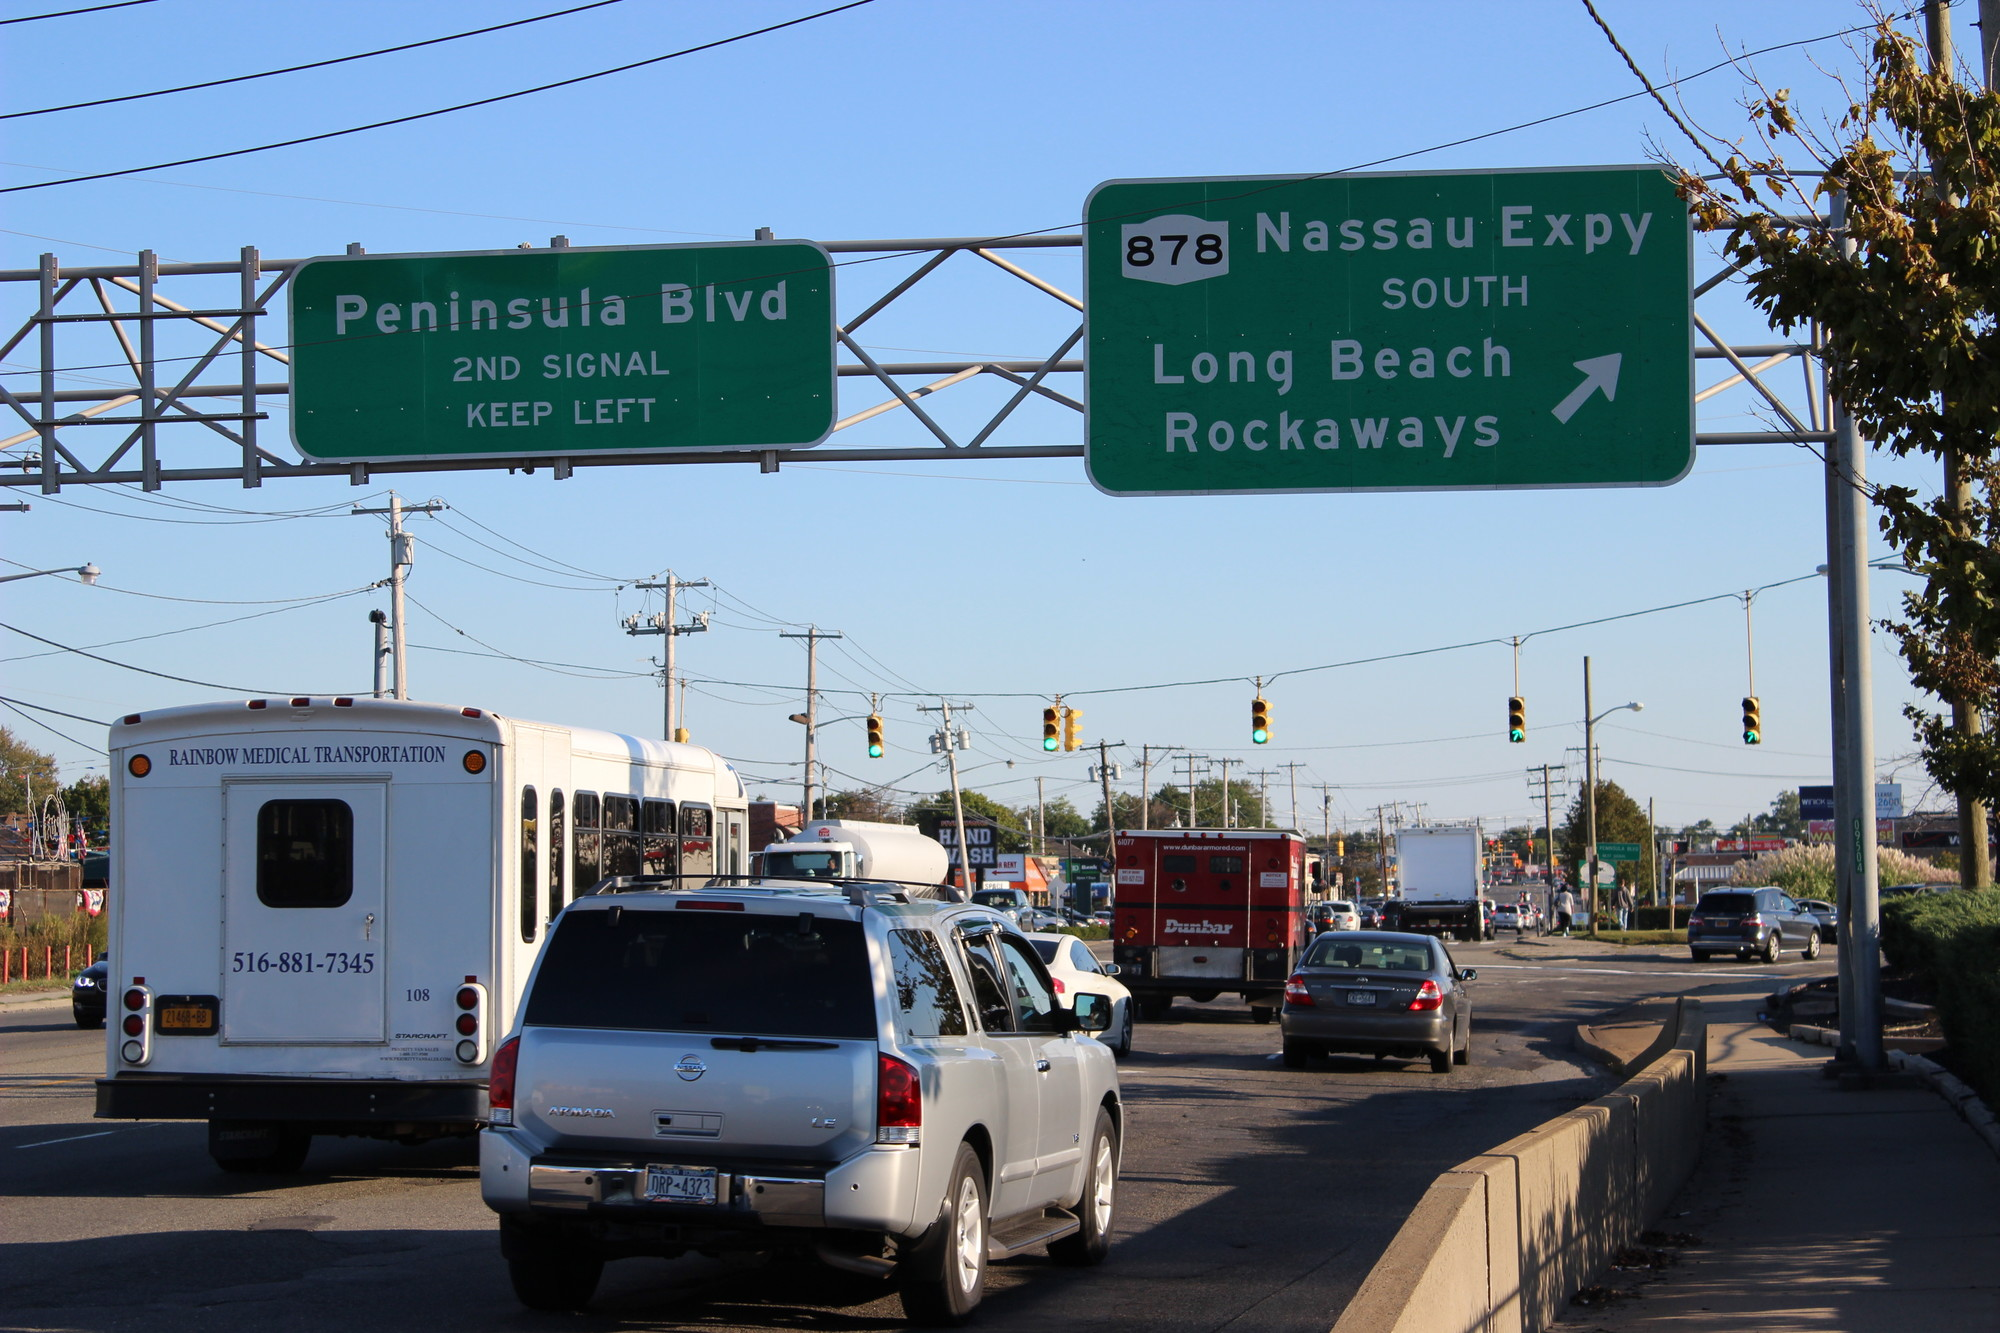 Easing traffic congestion and increasing accessibility during emergencies are the two main reasons that Legislators Howard Kopel and Phillip Goldfeder are campaigning for the state to complete construction of the Nassau Expressway.